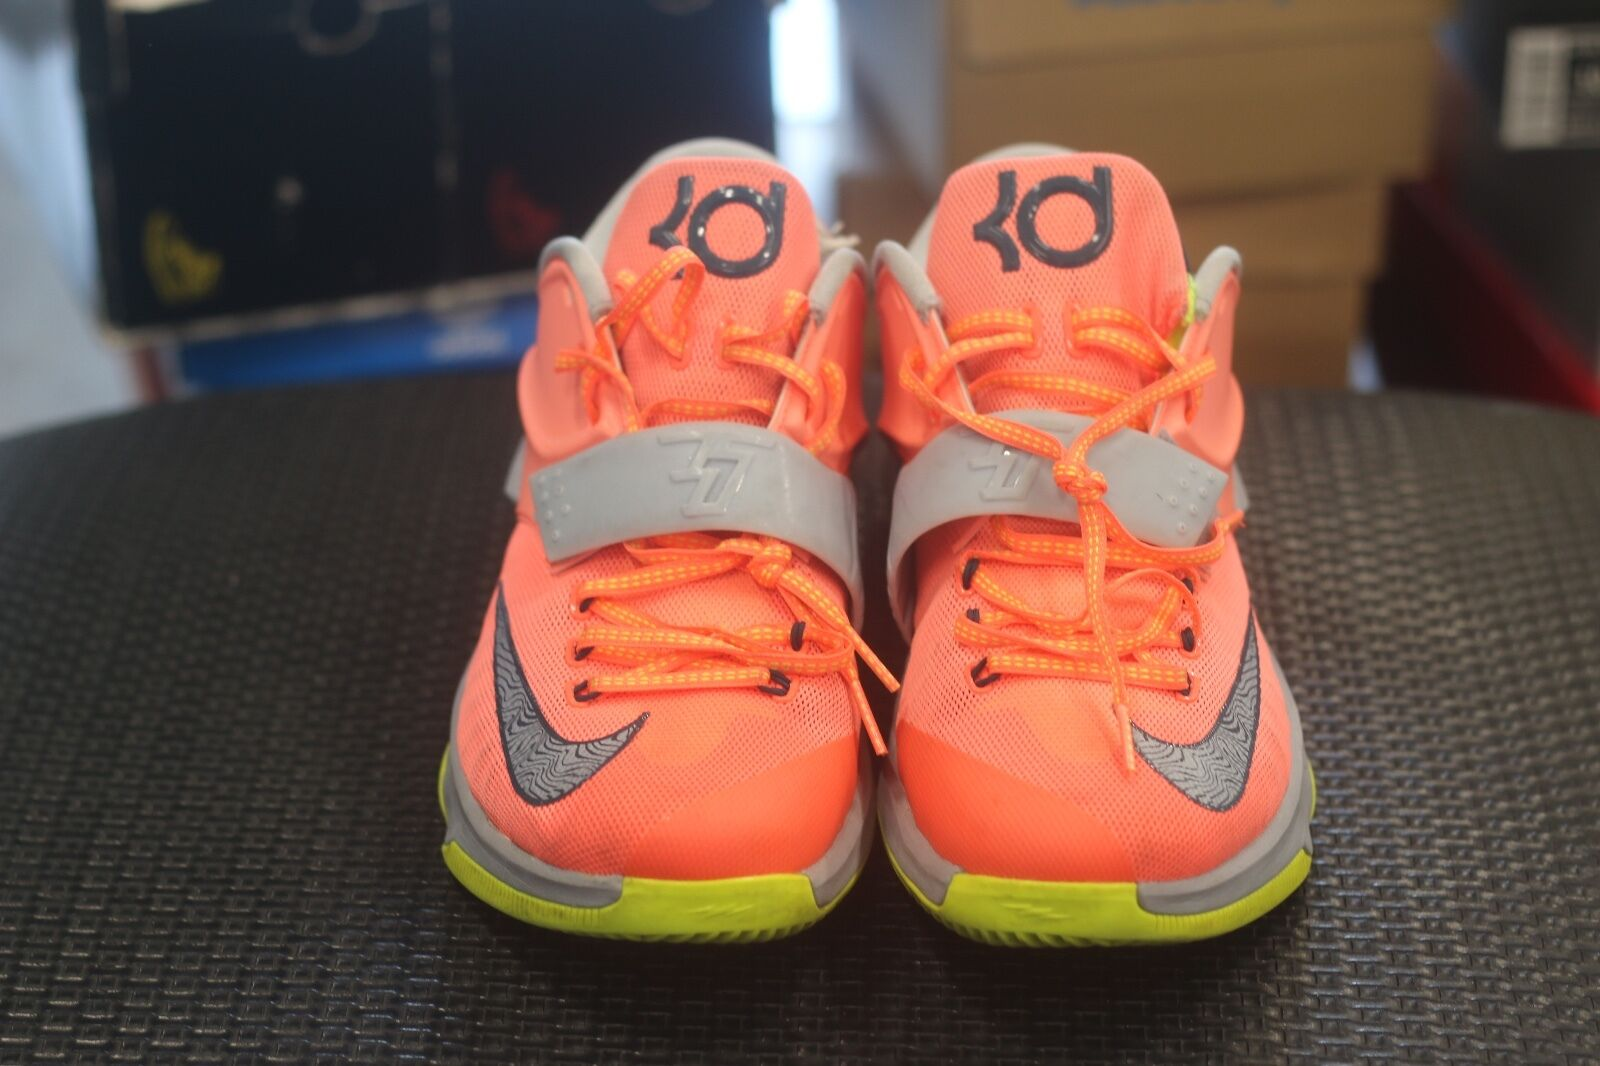 Nike 653996-840 KD VII Price reduction 35,000 Degrees Shoes Bright Mango Grey Men's Sz 10.5 Special limited time